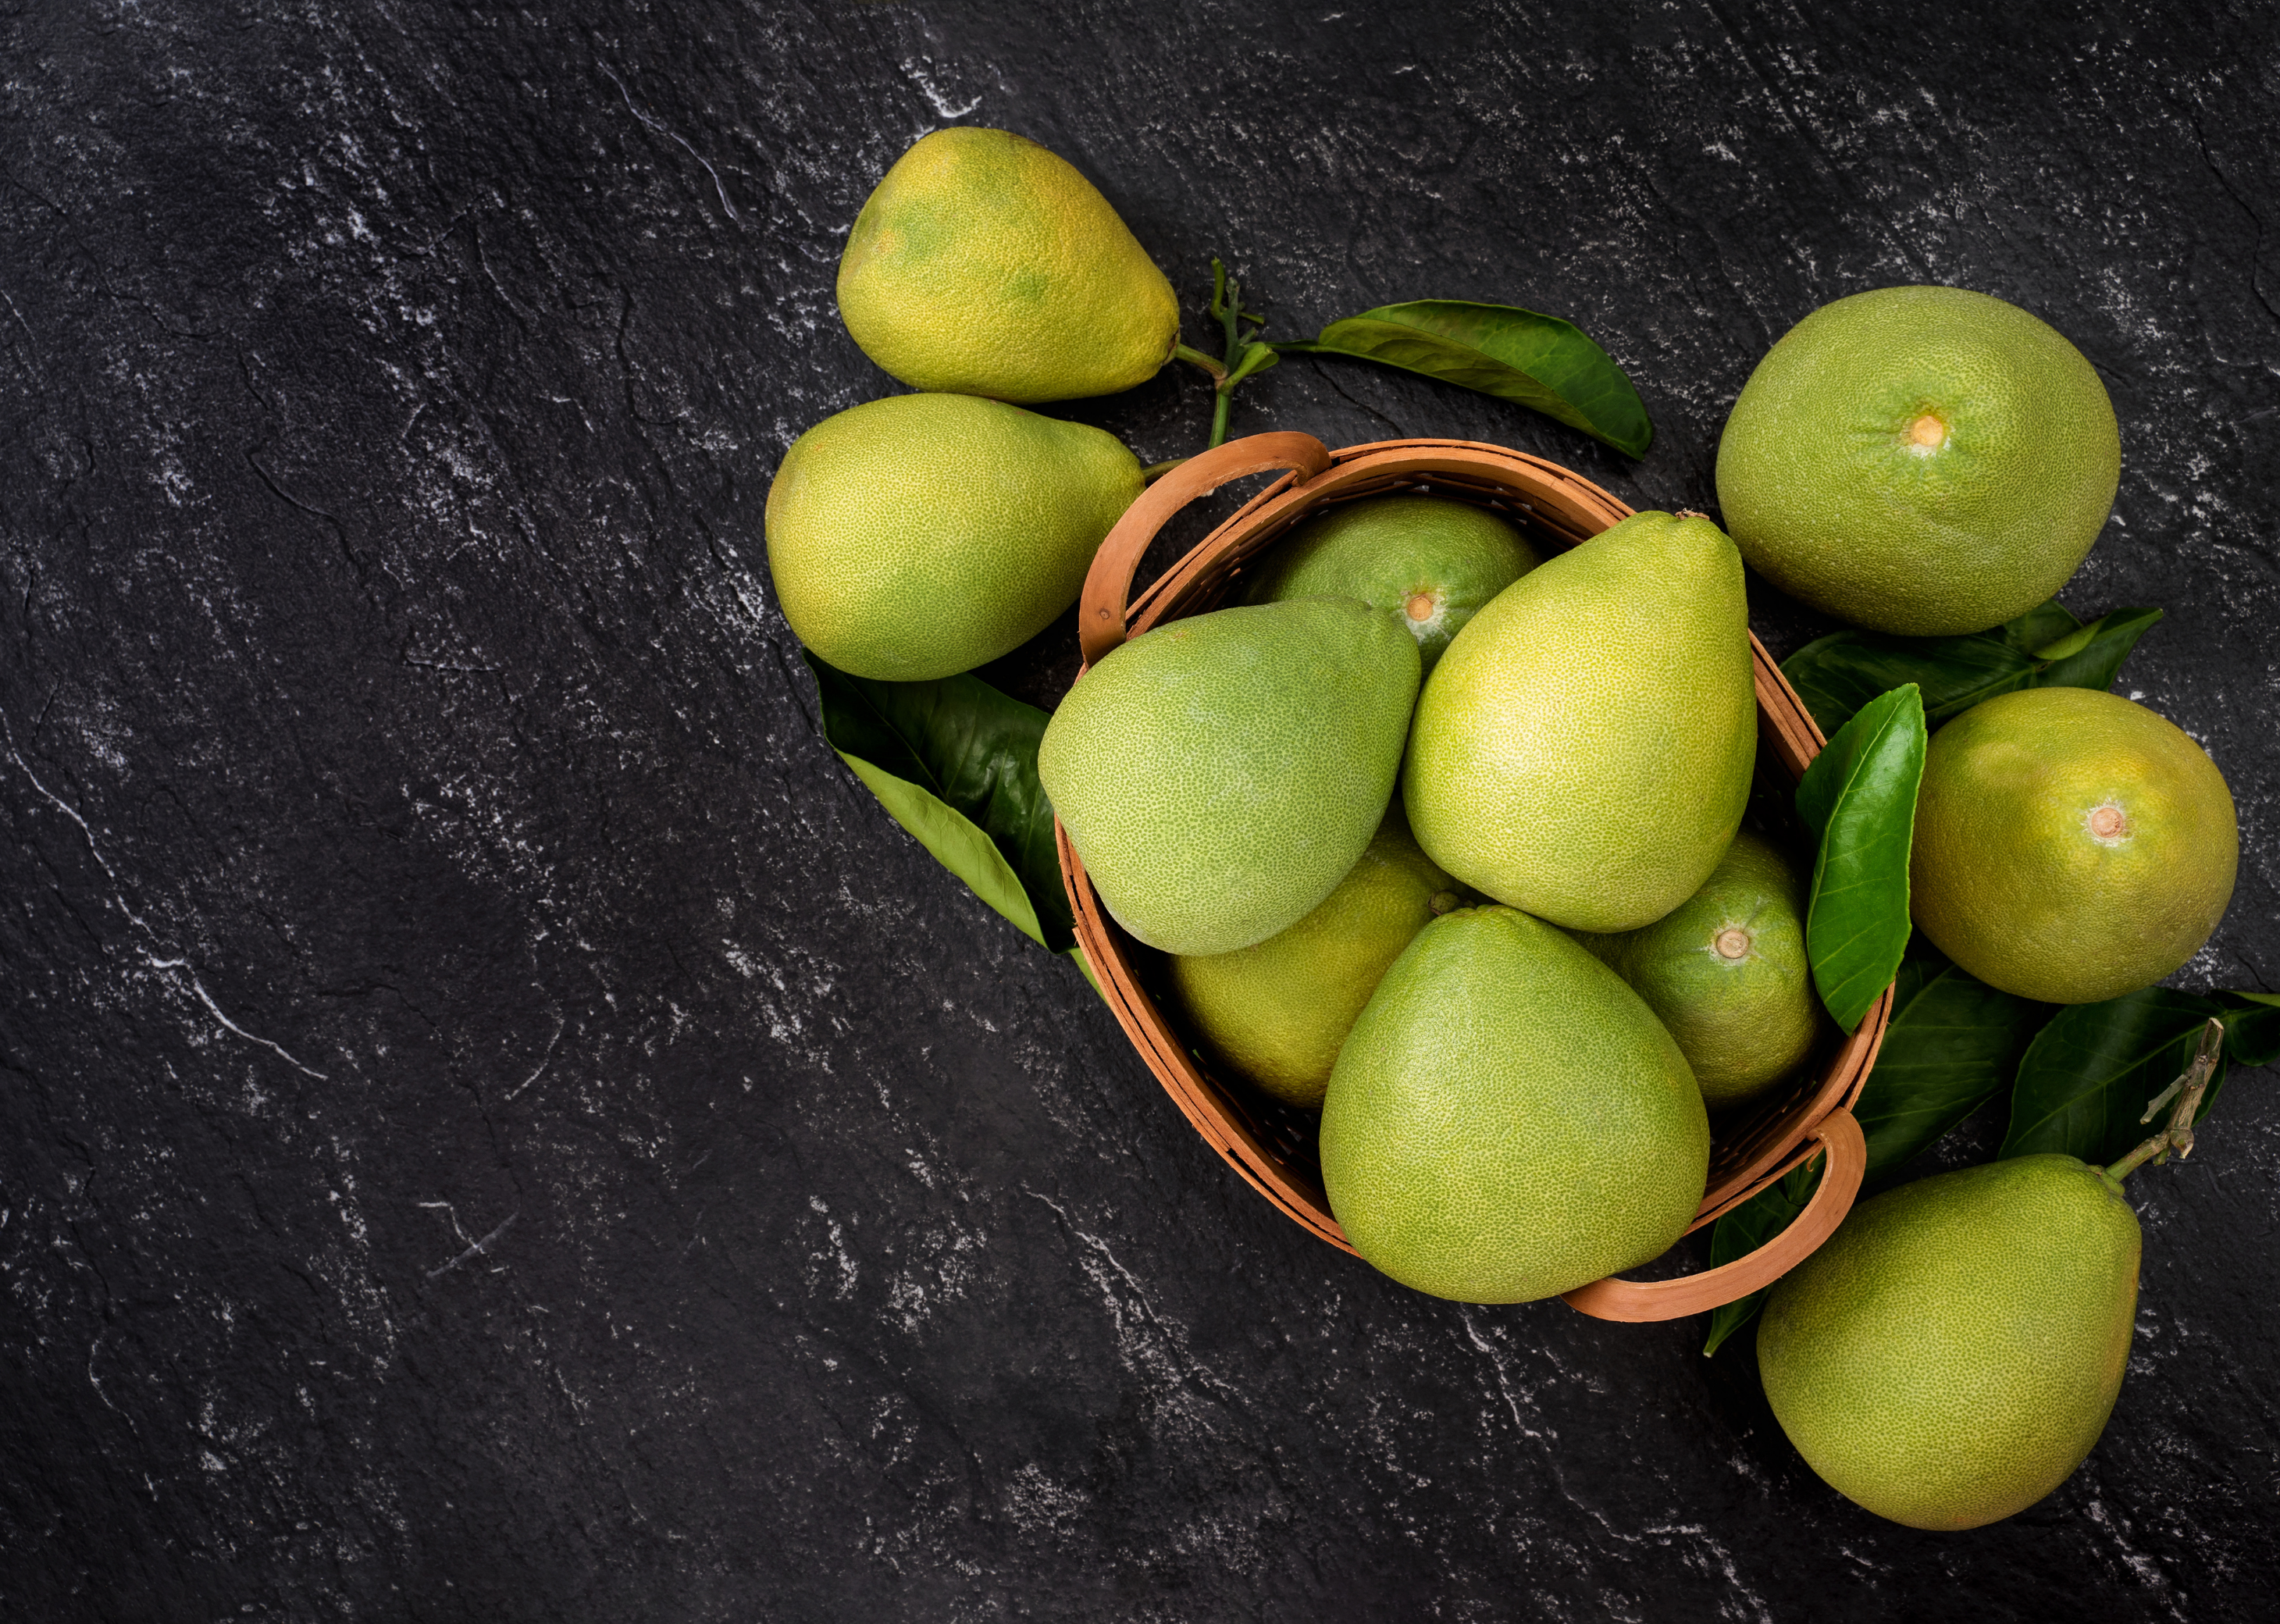 Pomelo | Citrus Fruits and Vegetables